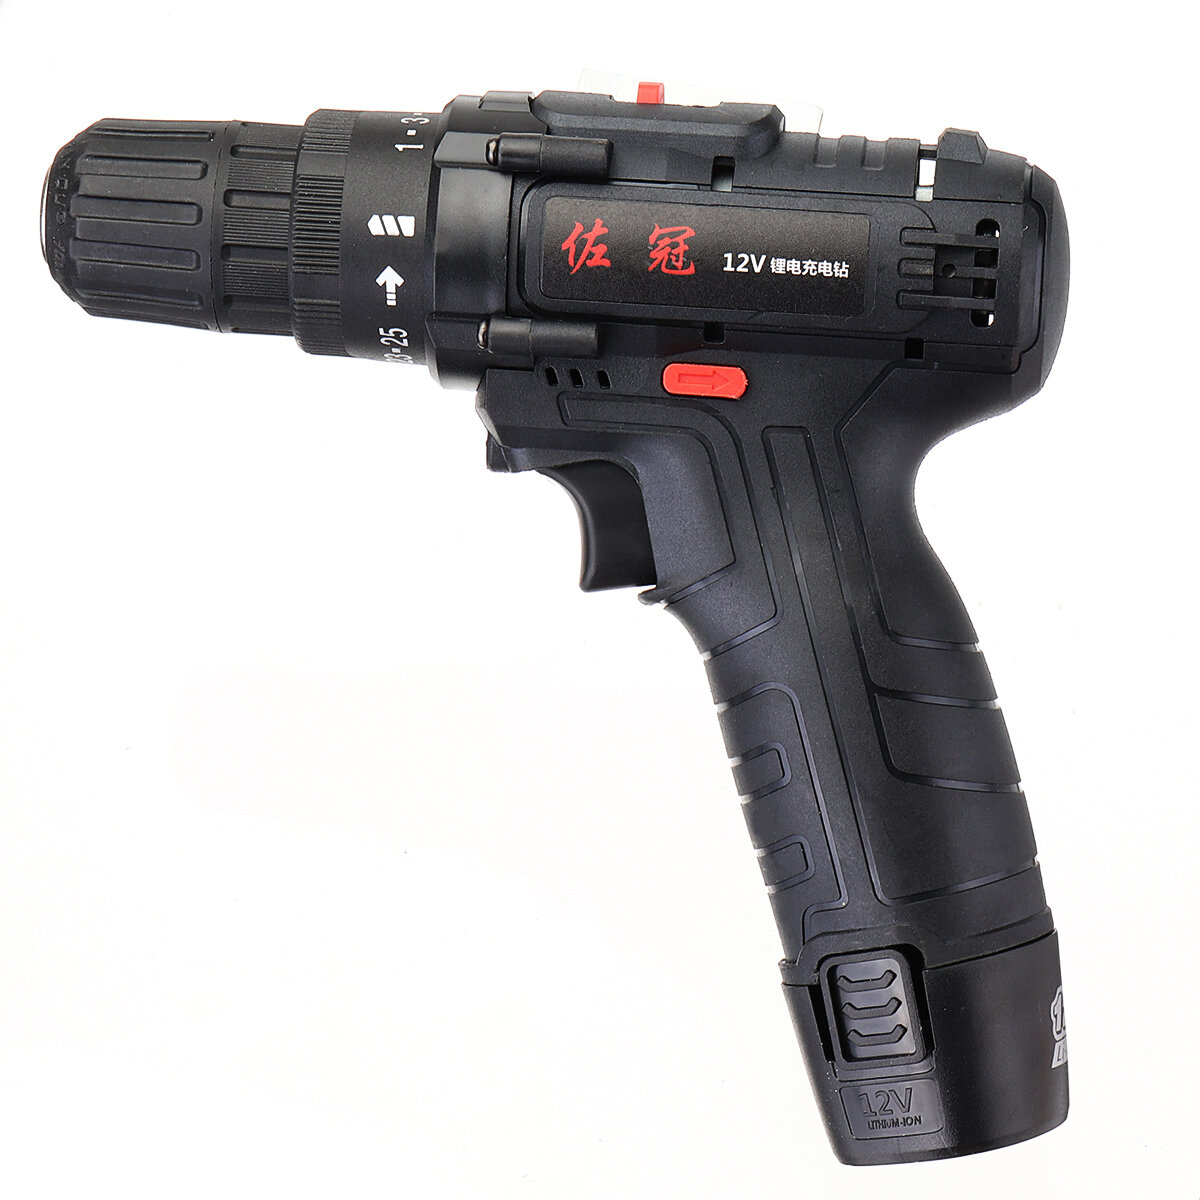 Shunzao 12V Cordless Multi-purposed 3 In 1 Imact Drill Driver Hammer 30Nm Electric Screwdriver Drill 2000mAh Li-ion Battery from xiaomi youpin - 7